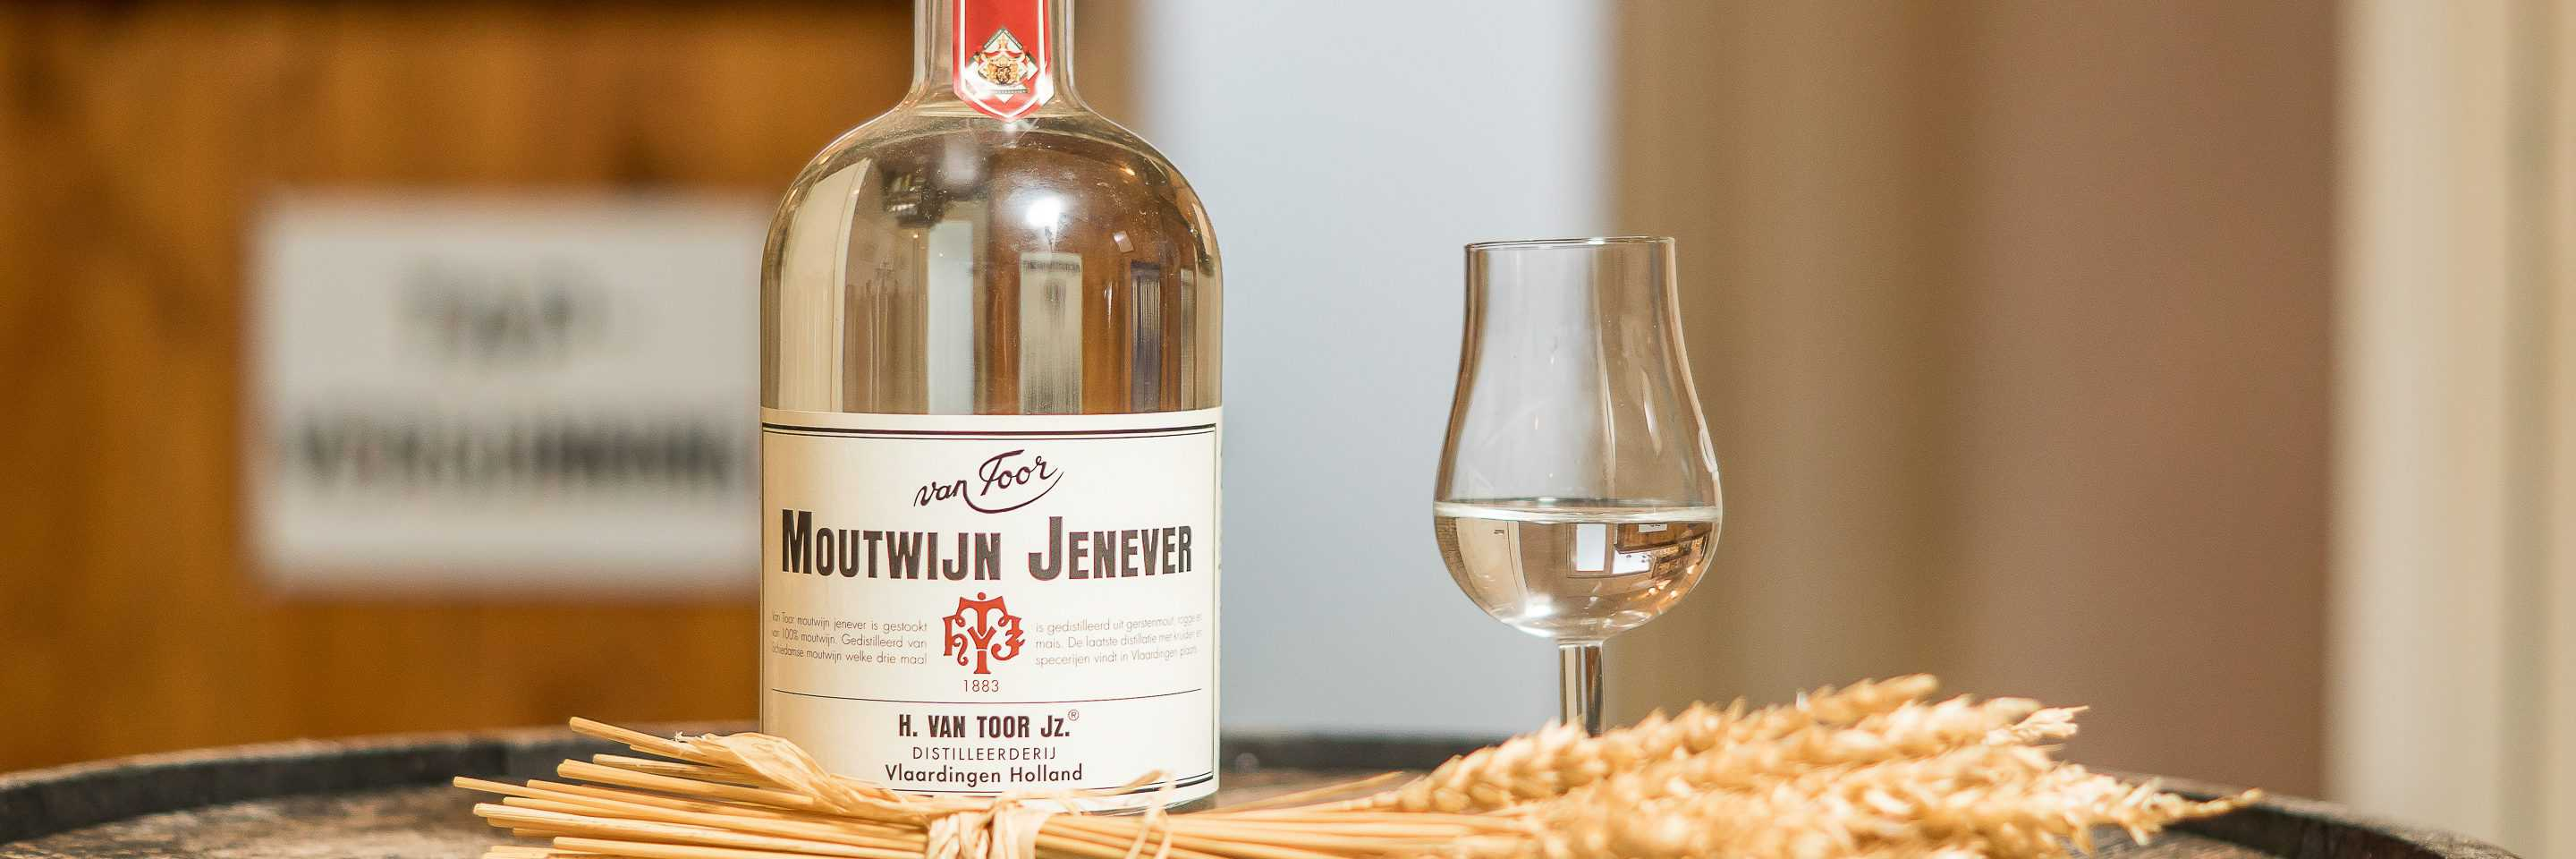 Jenevers: Moutwijn Jenever